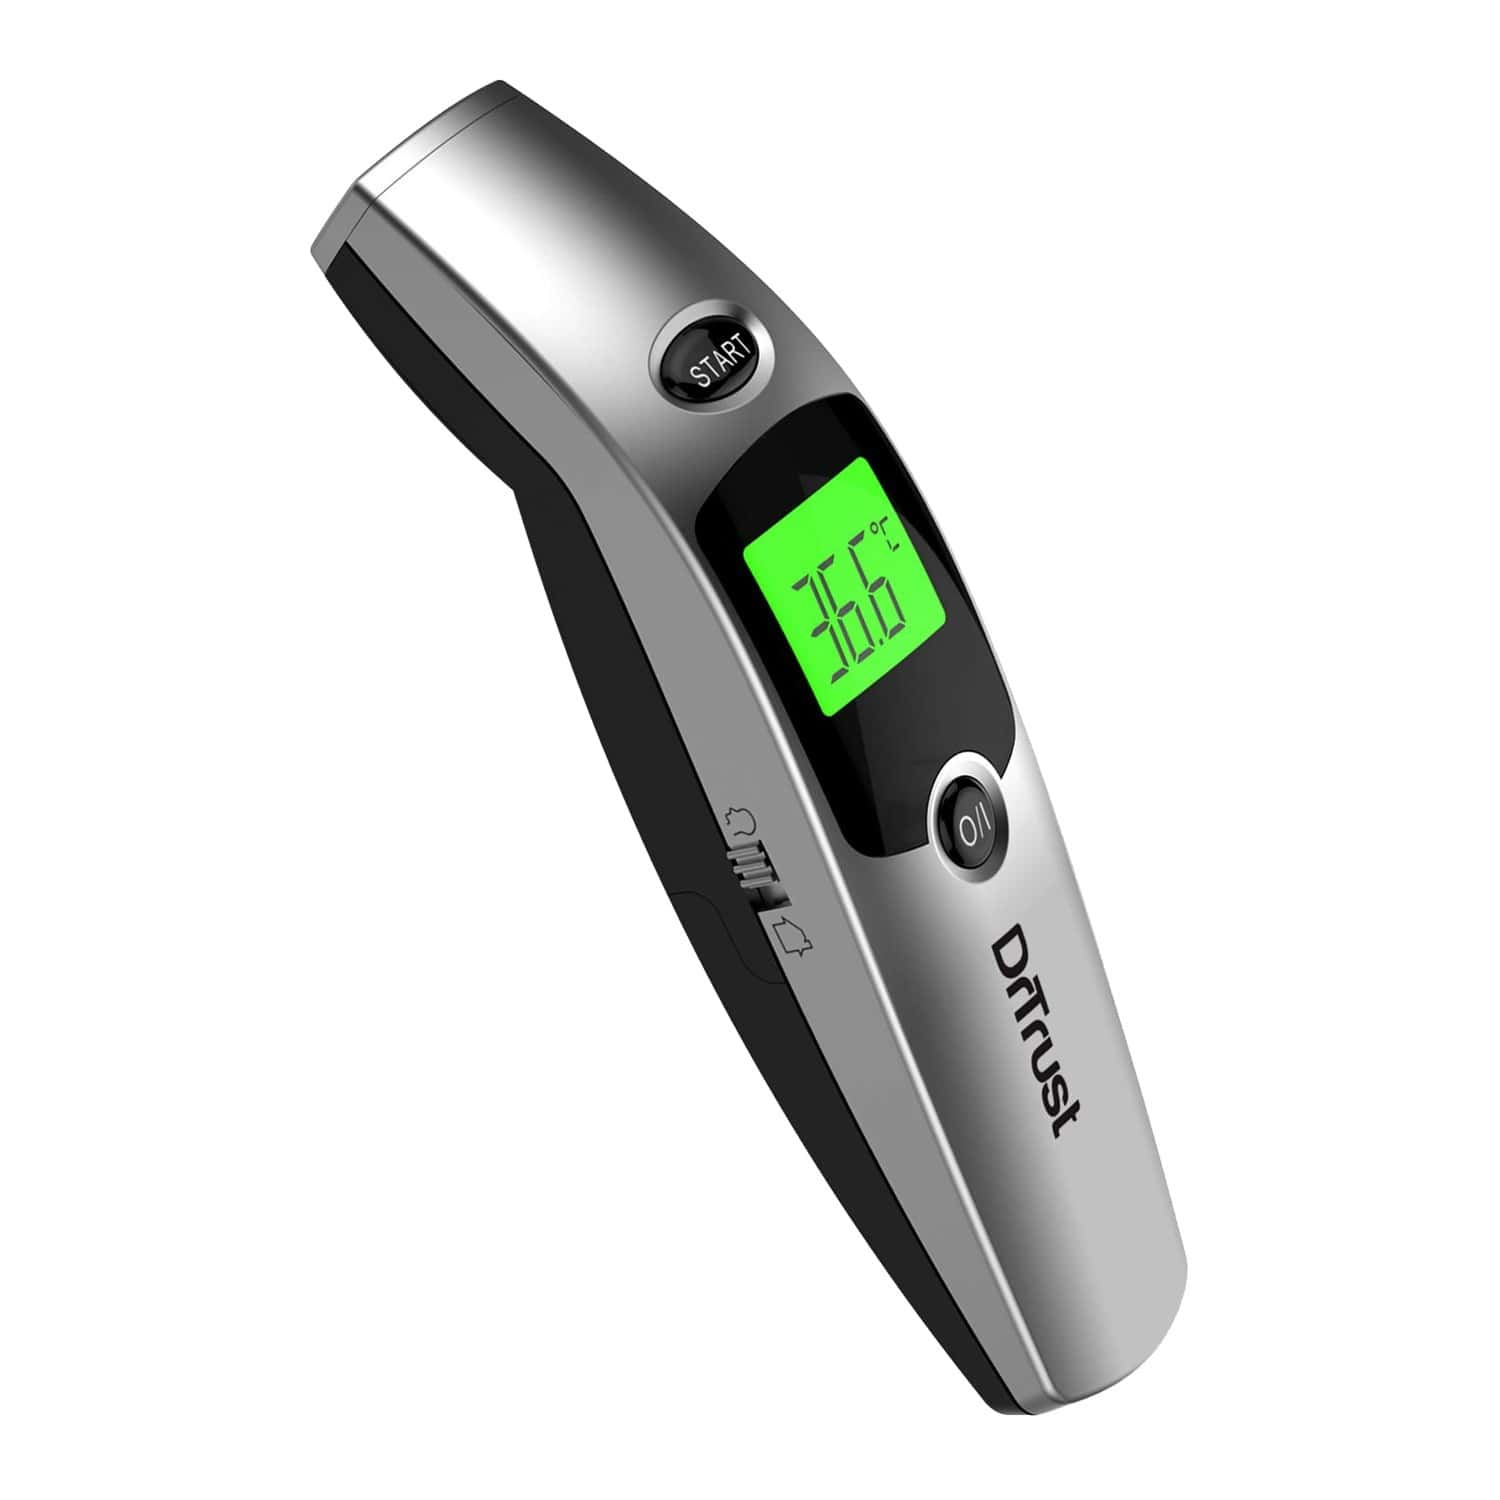 Dr Trust ( Usa ) Forehead Digital Infrared Thermometer For Babies And Adults With Color Coded Fever Guidance